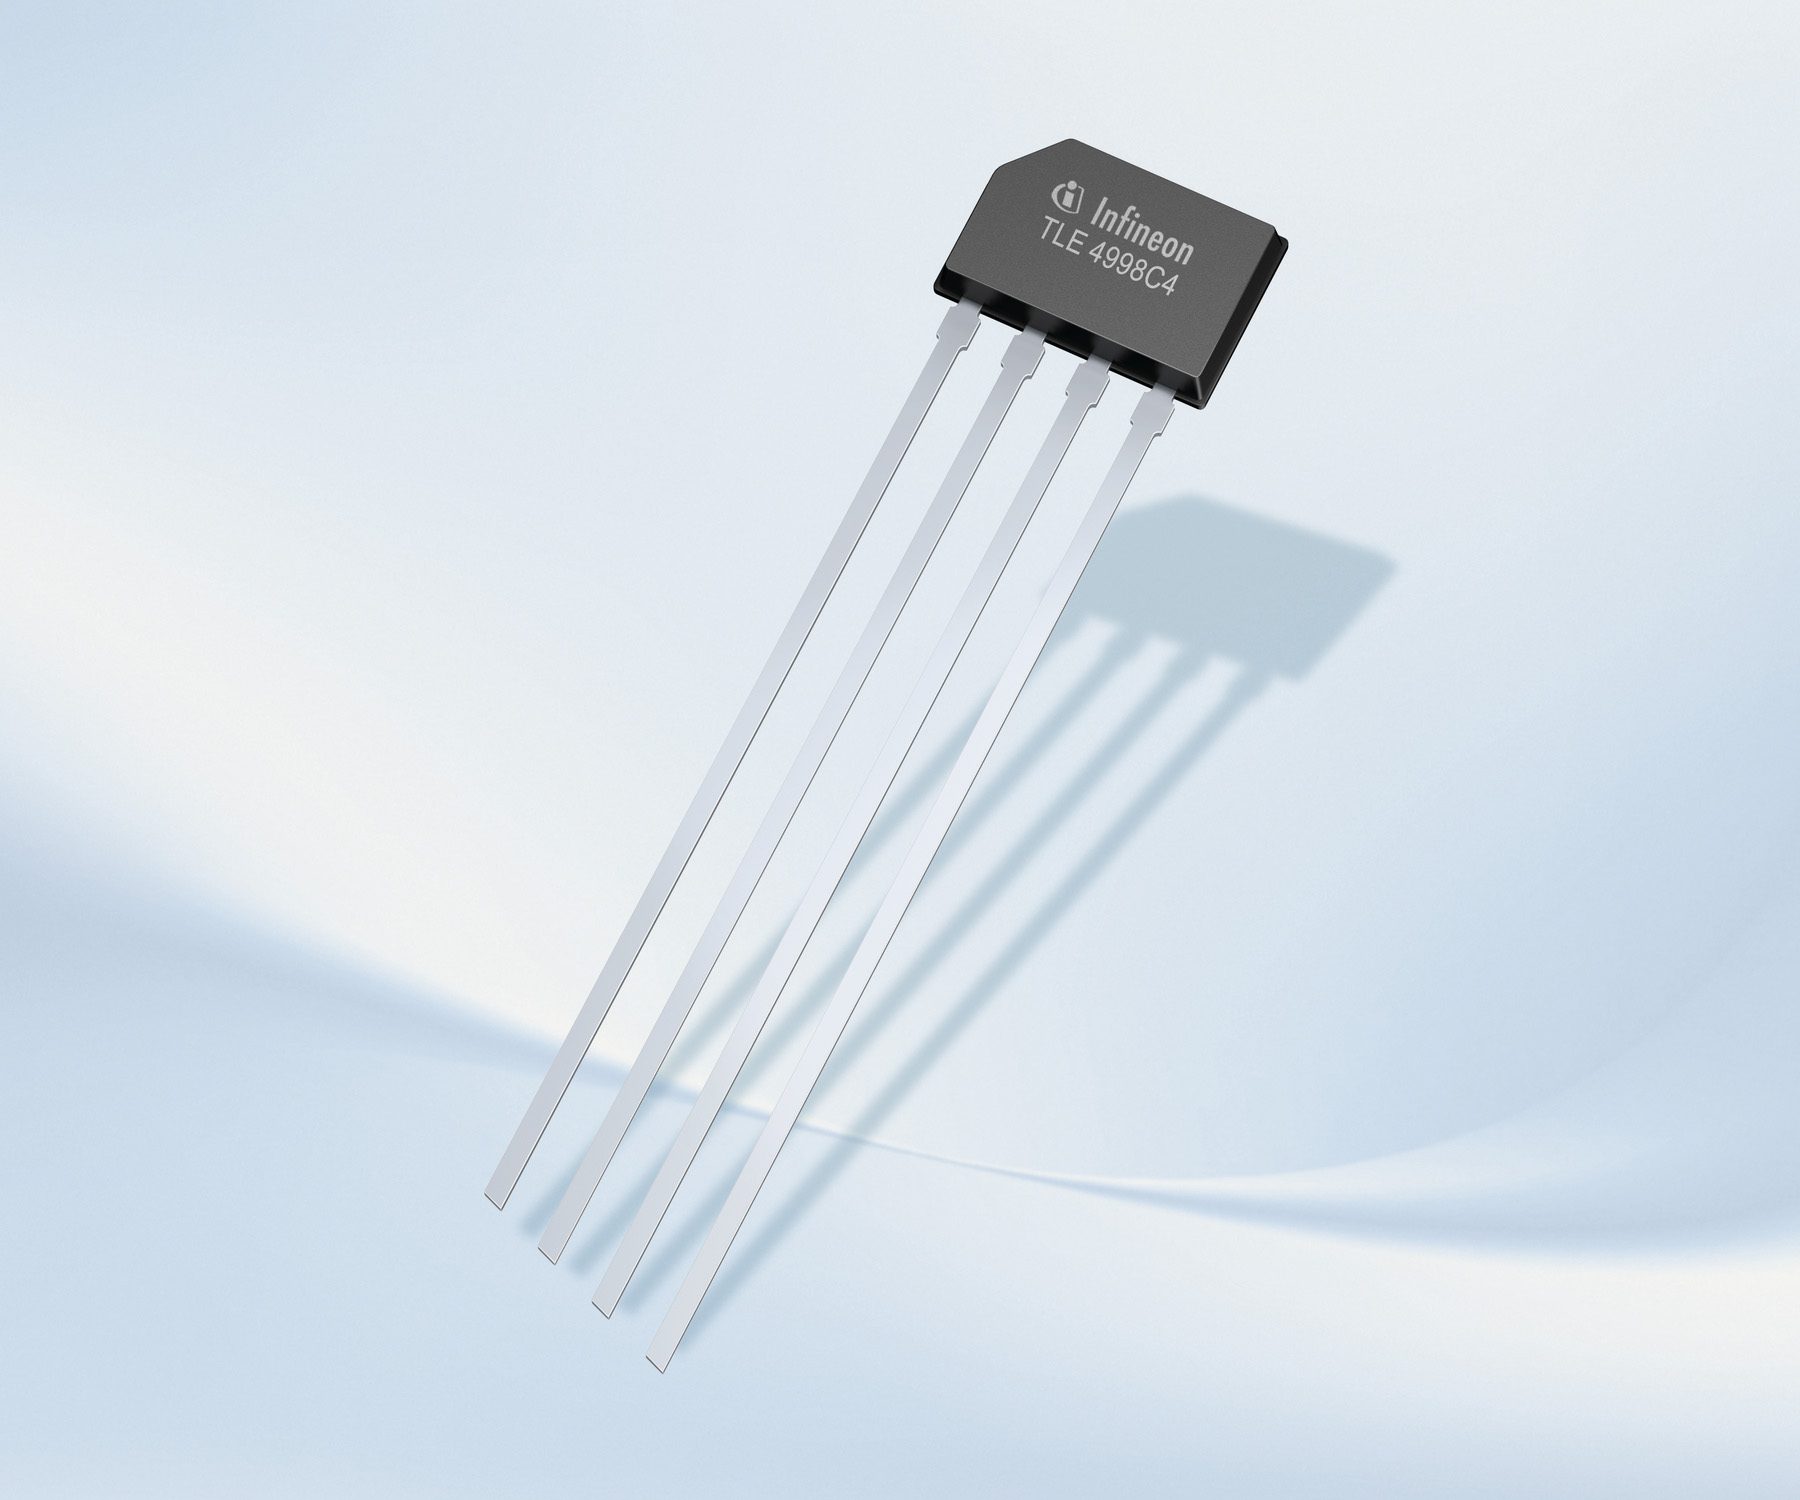 Volkswagen to Use Infineon Sensor Chip in Electric Power Steering Systems - Infineon Technologies